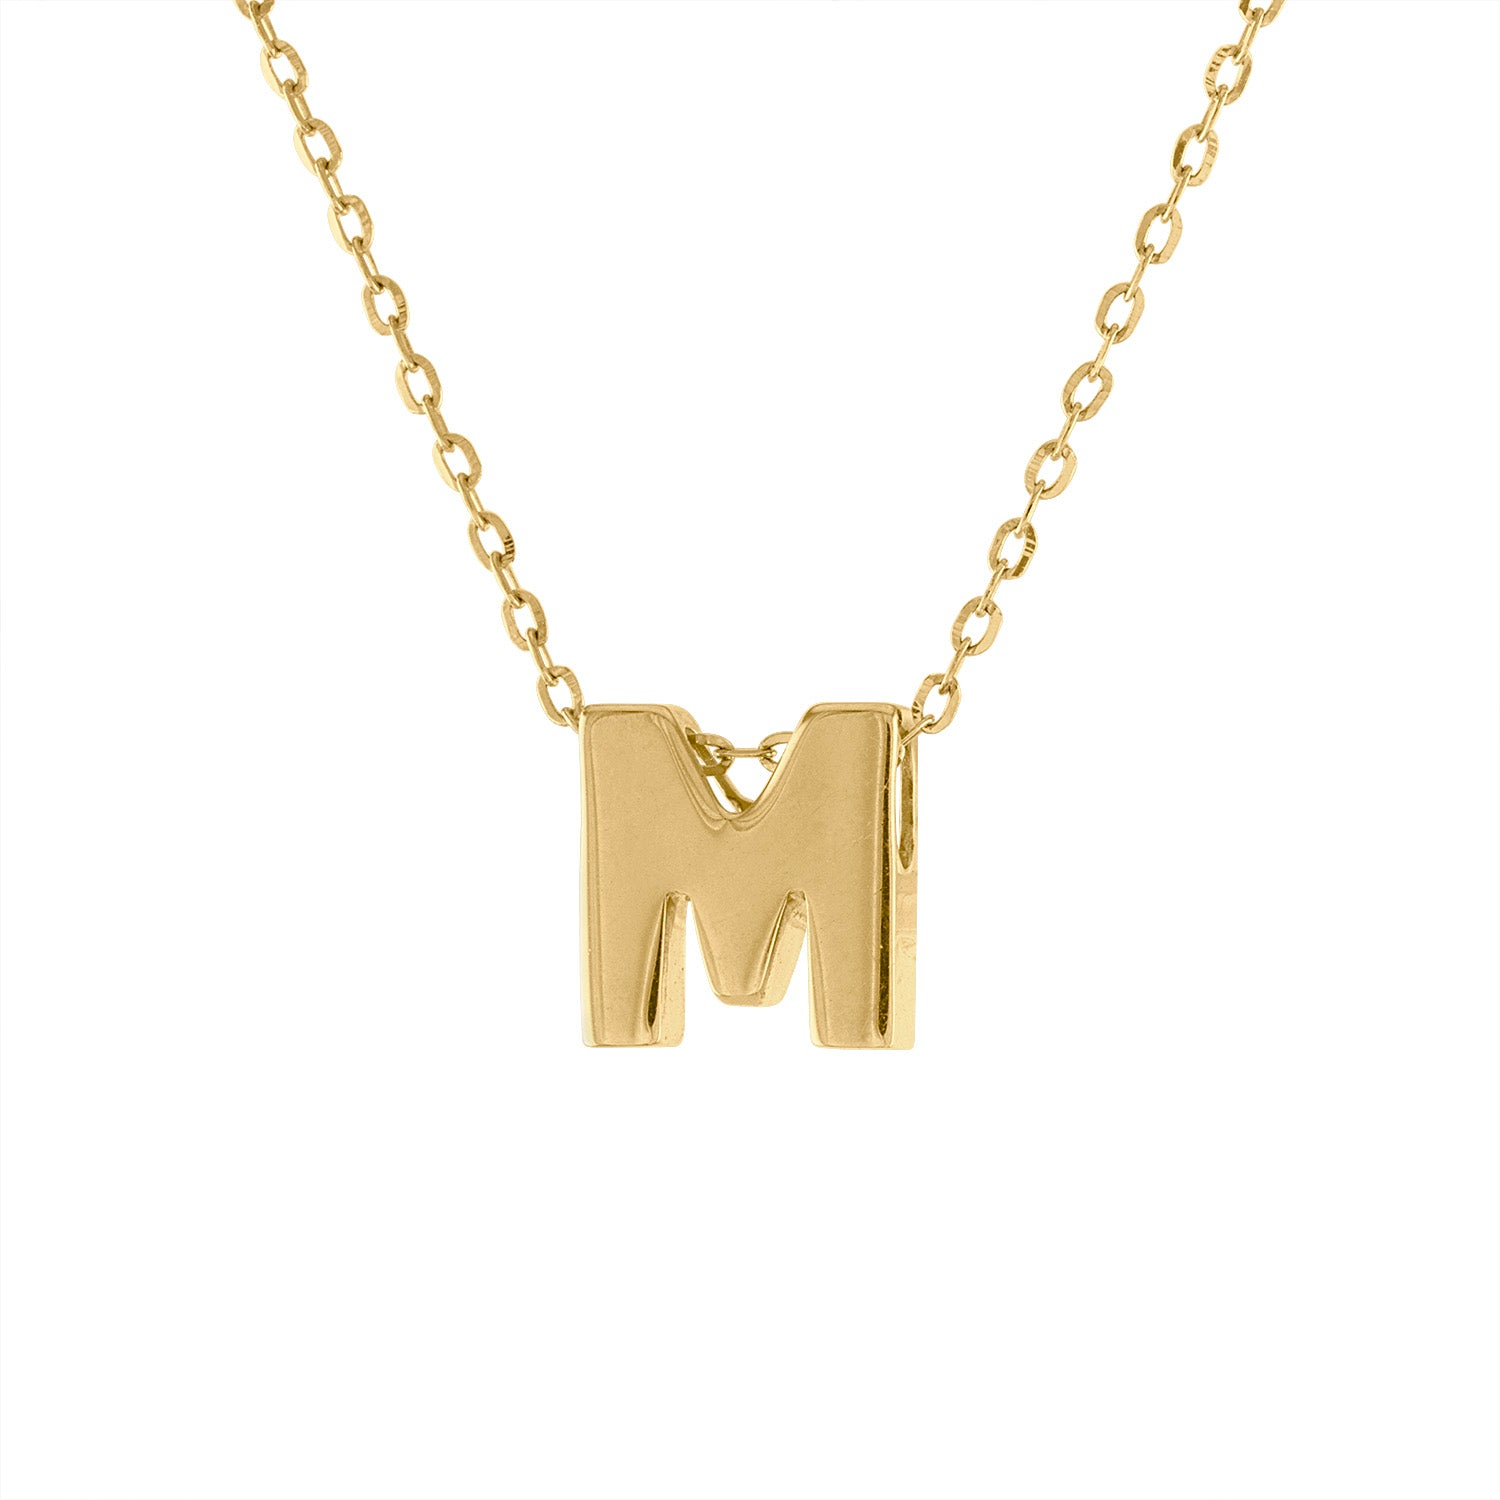 14k Yellow Gold plain initial M necklace